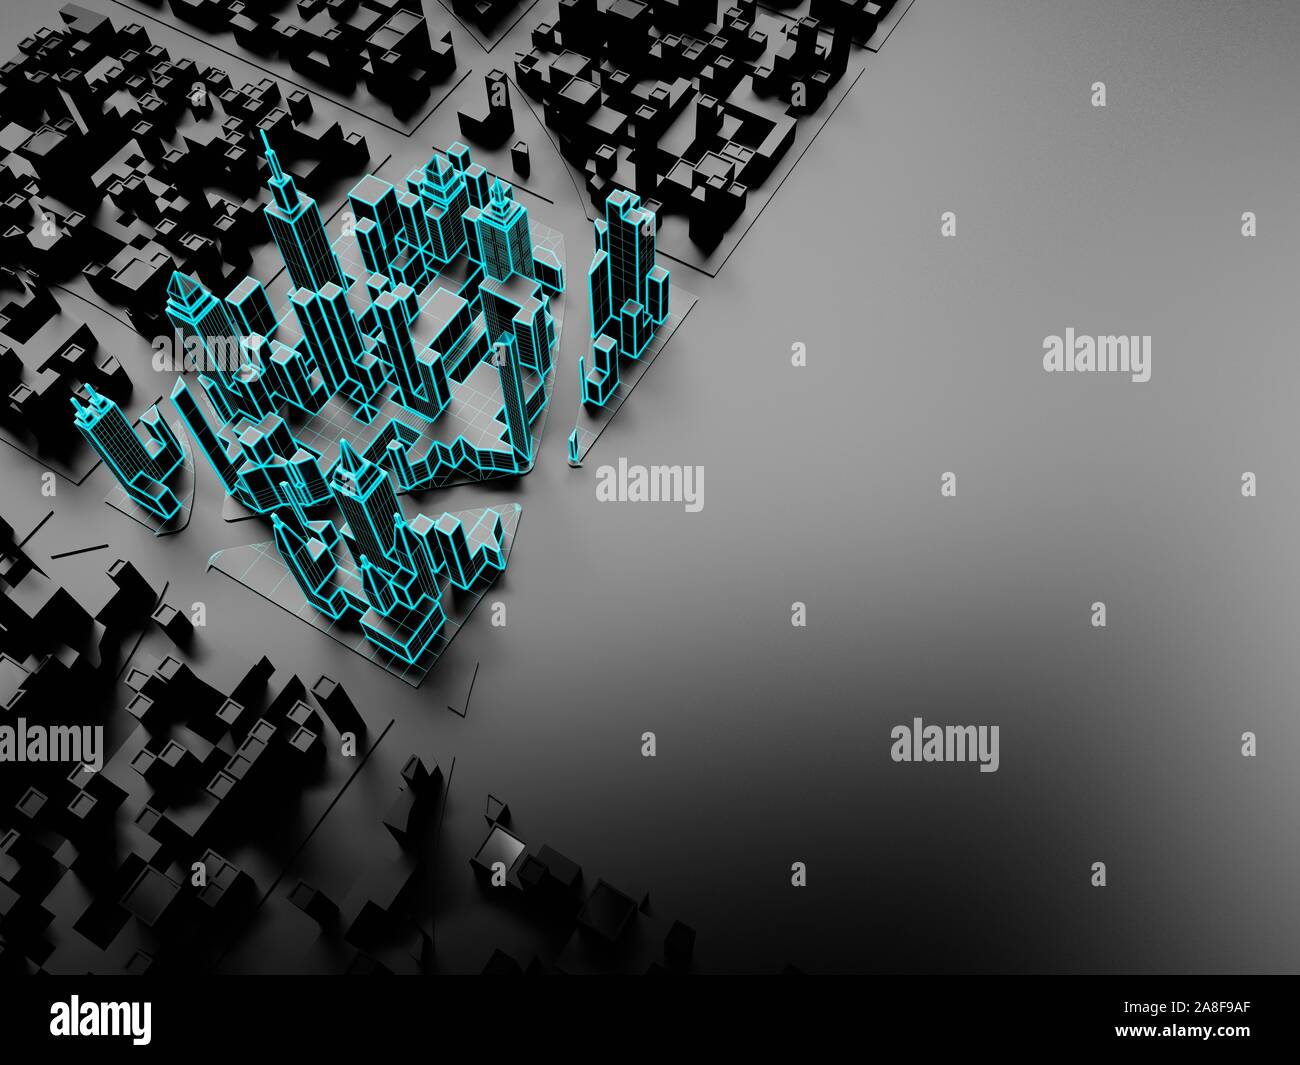 Digital city with smart technology, conceptual 3D illustration. Stock Photo